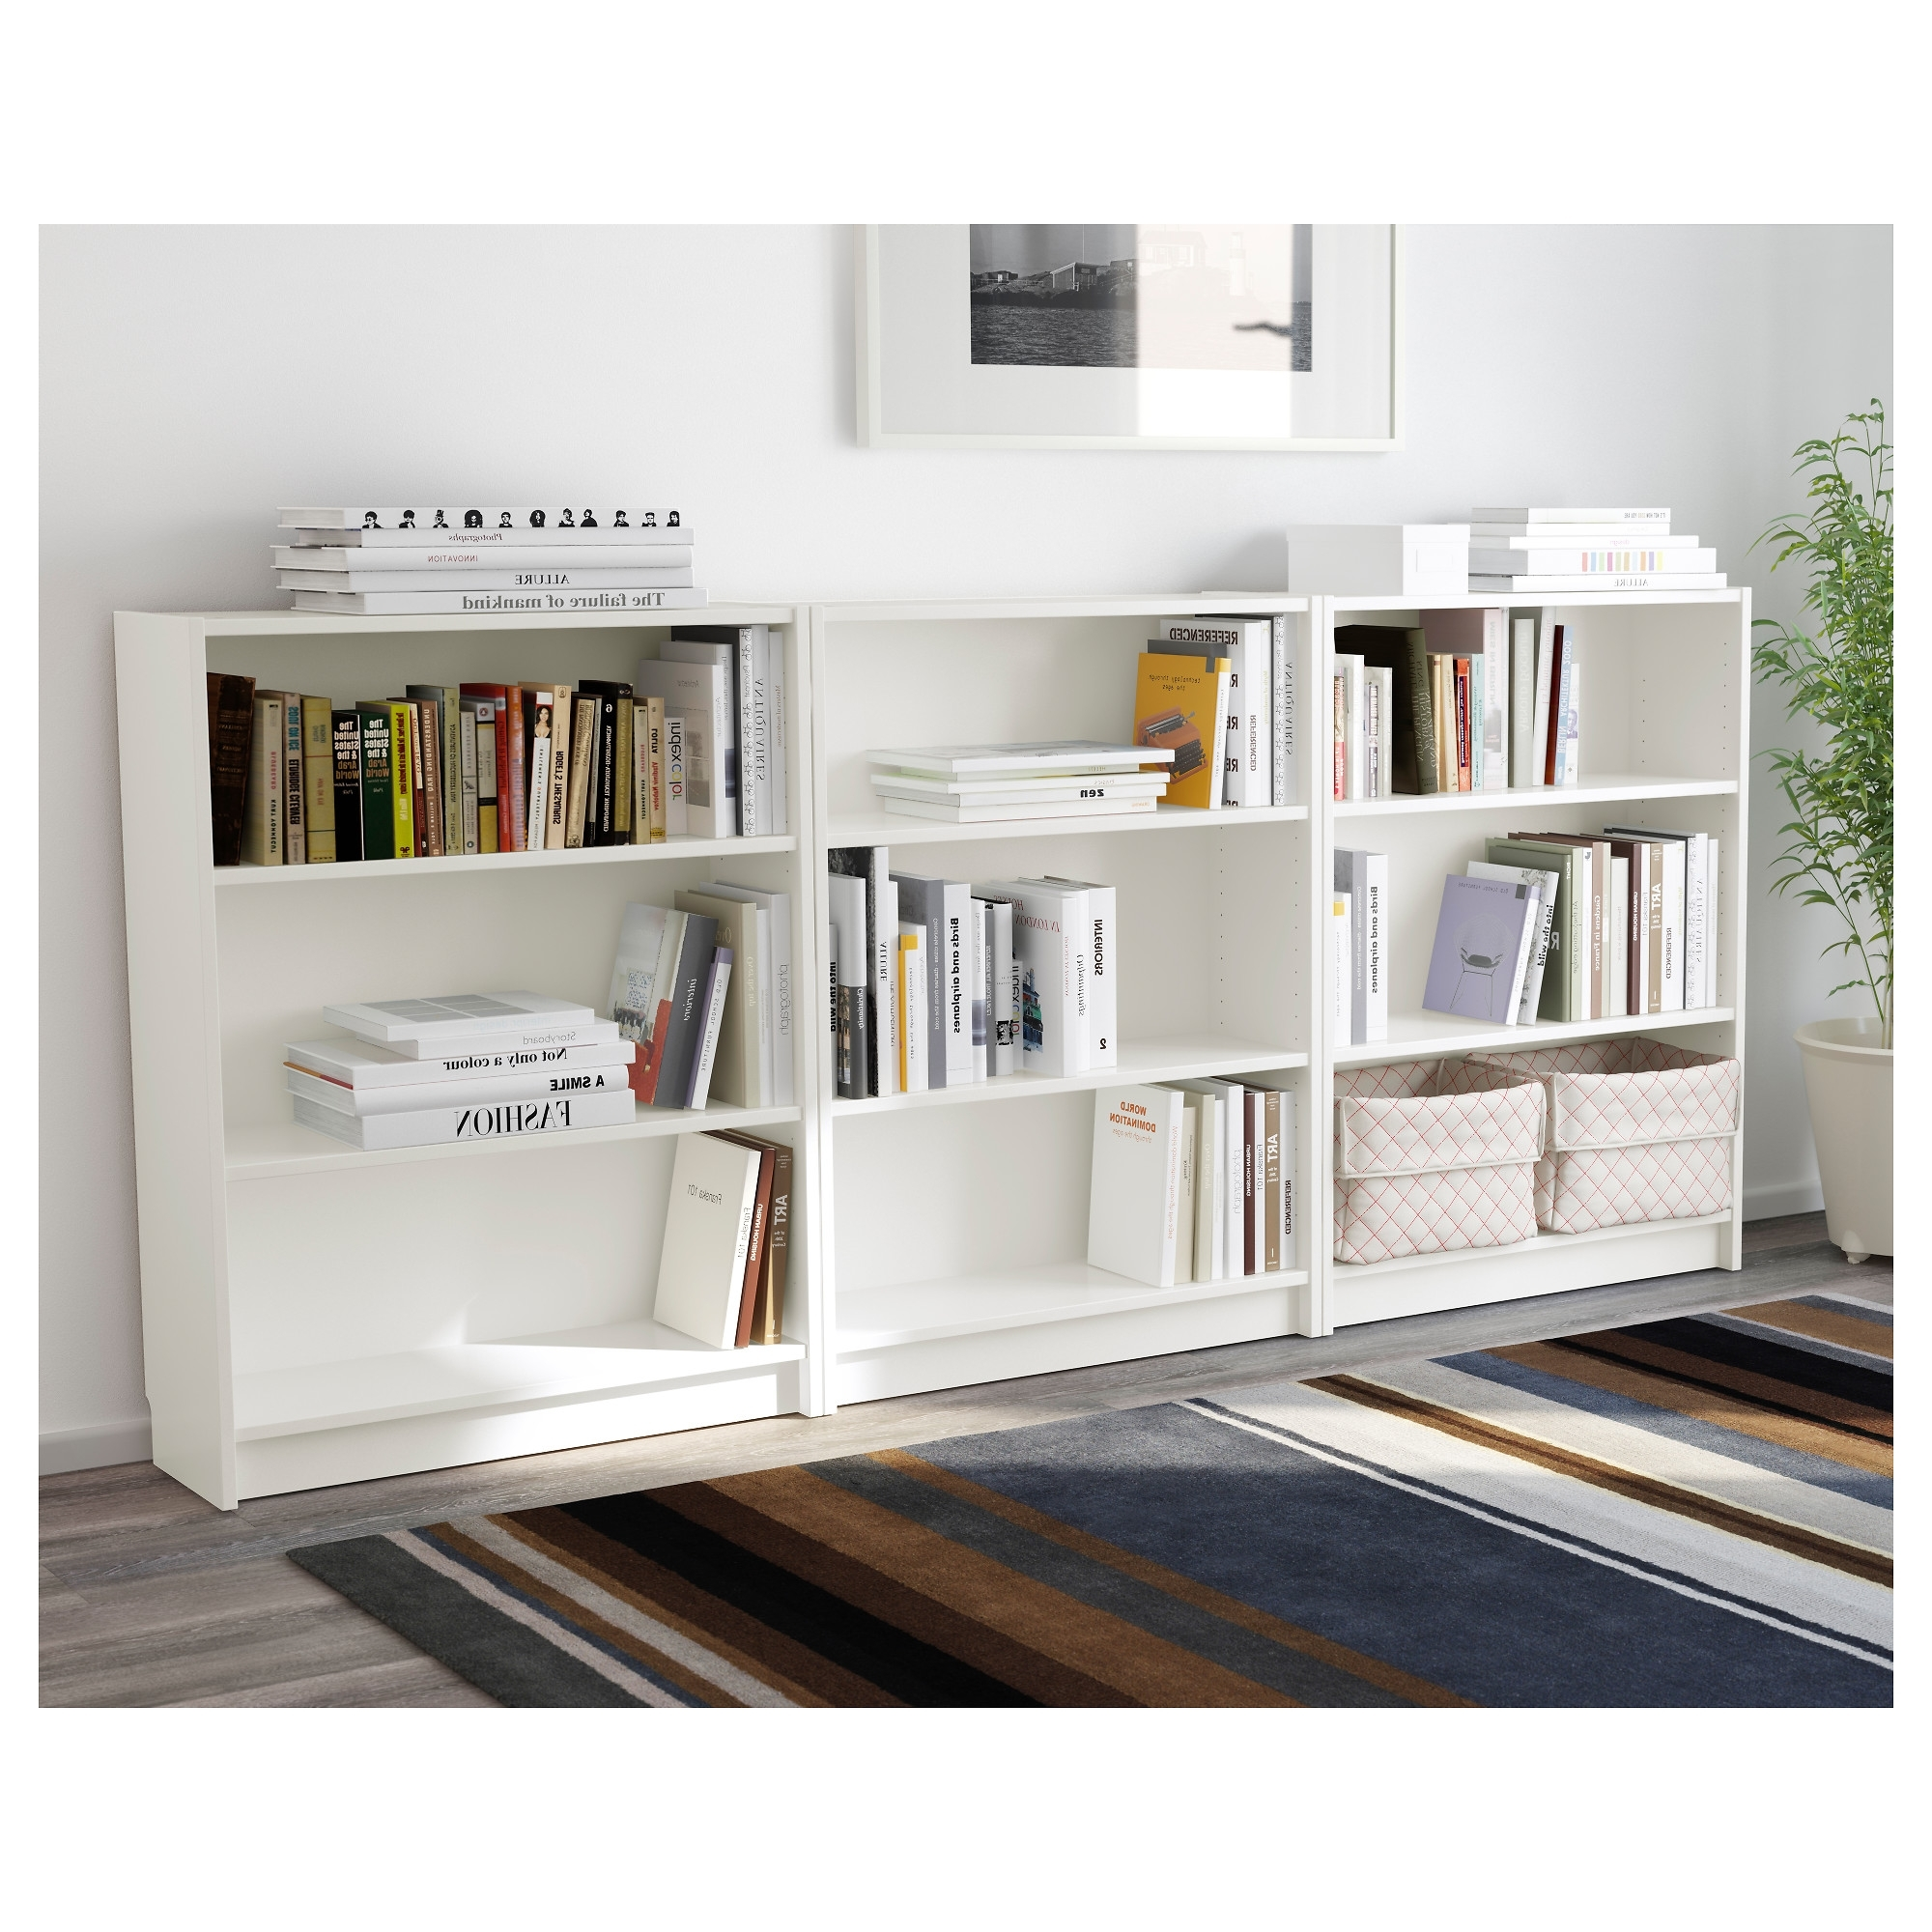 Ikea Billy Bookcases Throughout Most Popular Billy Bookcase – Black Brown – Ikea (View 4 of 15)